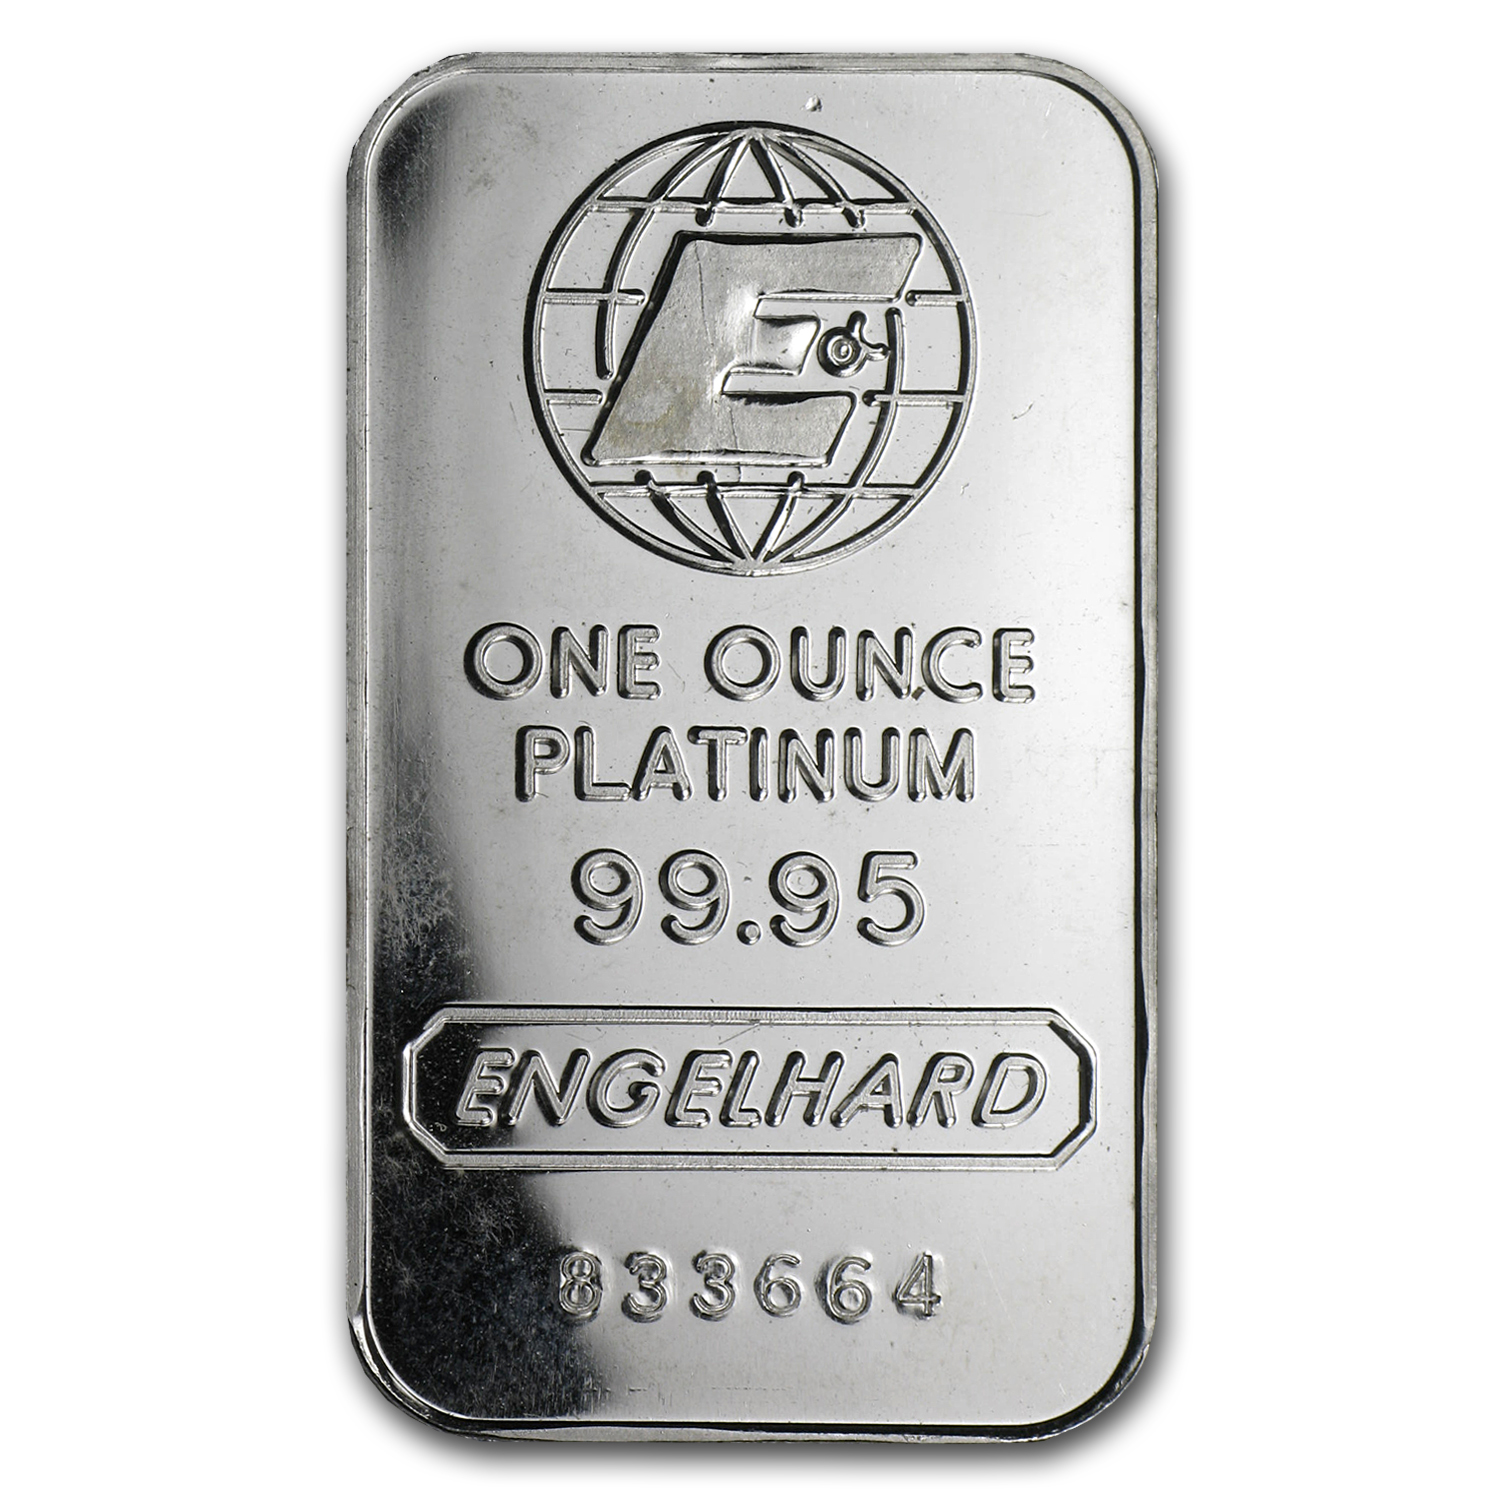 1 oz Platinum Bar - Engelhard (.9995 Fine, 'E' logo, No Assay)